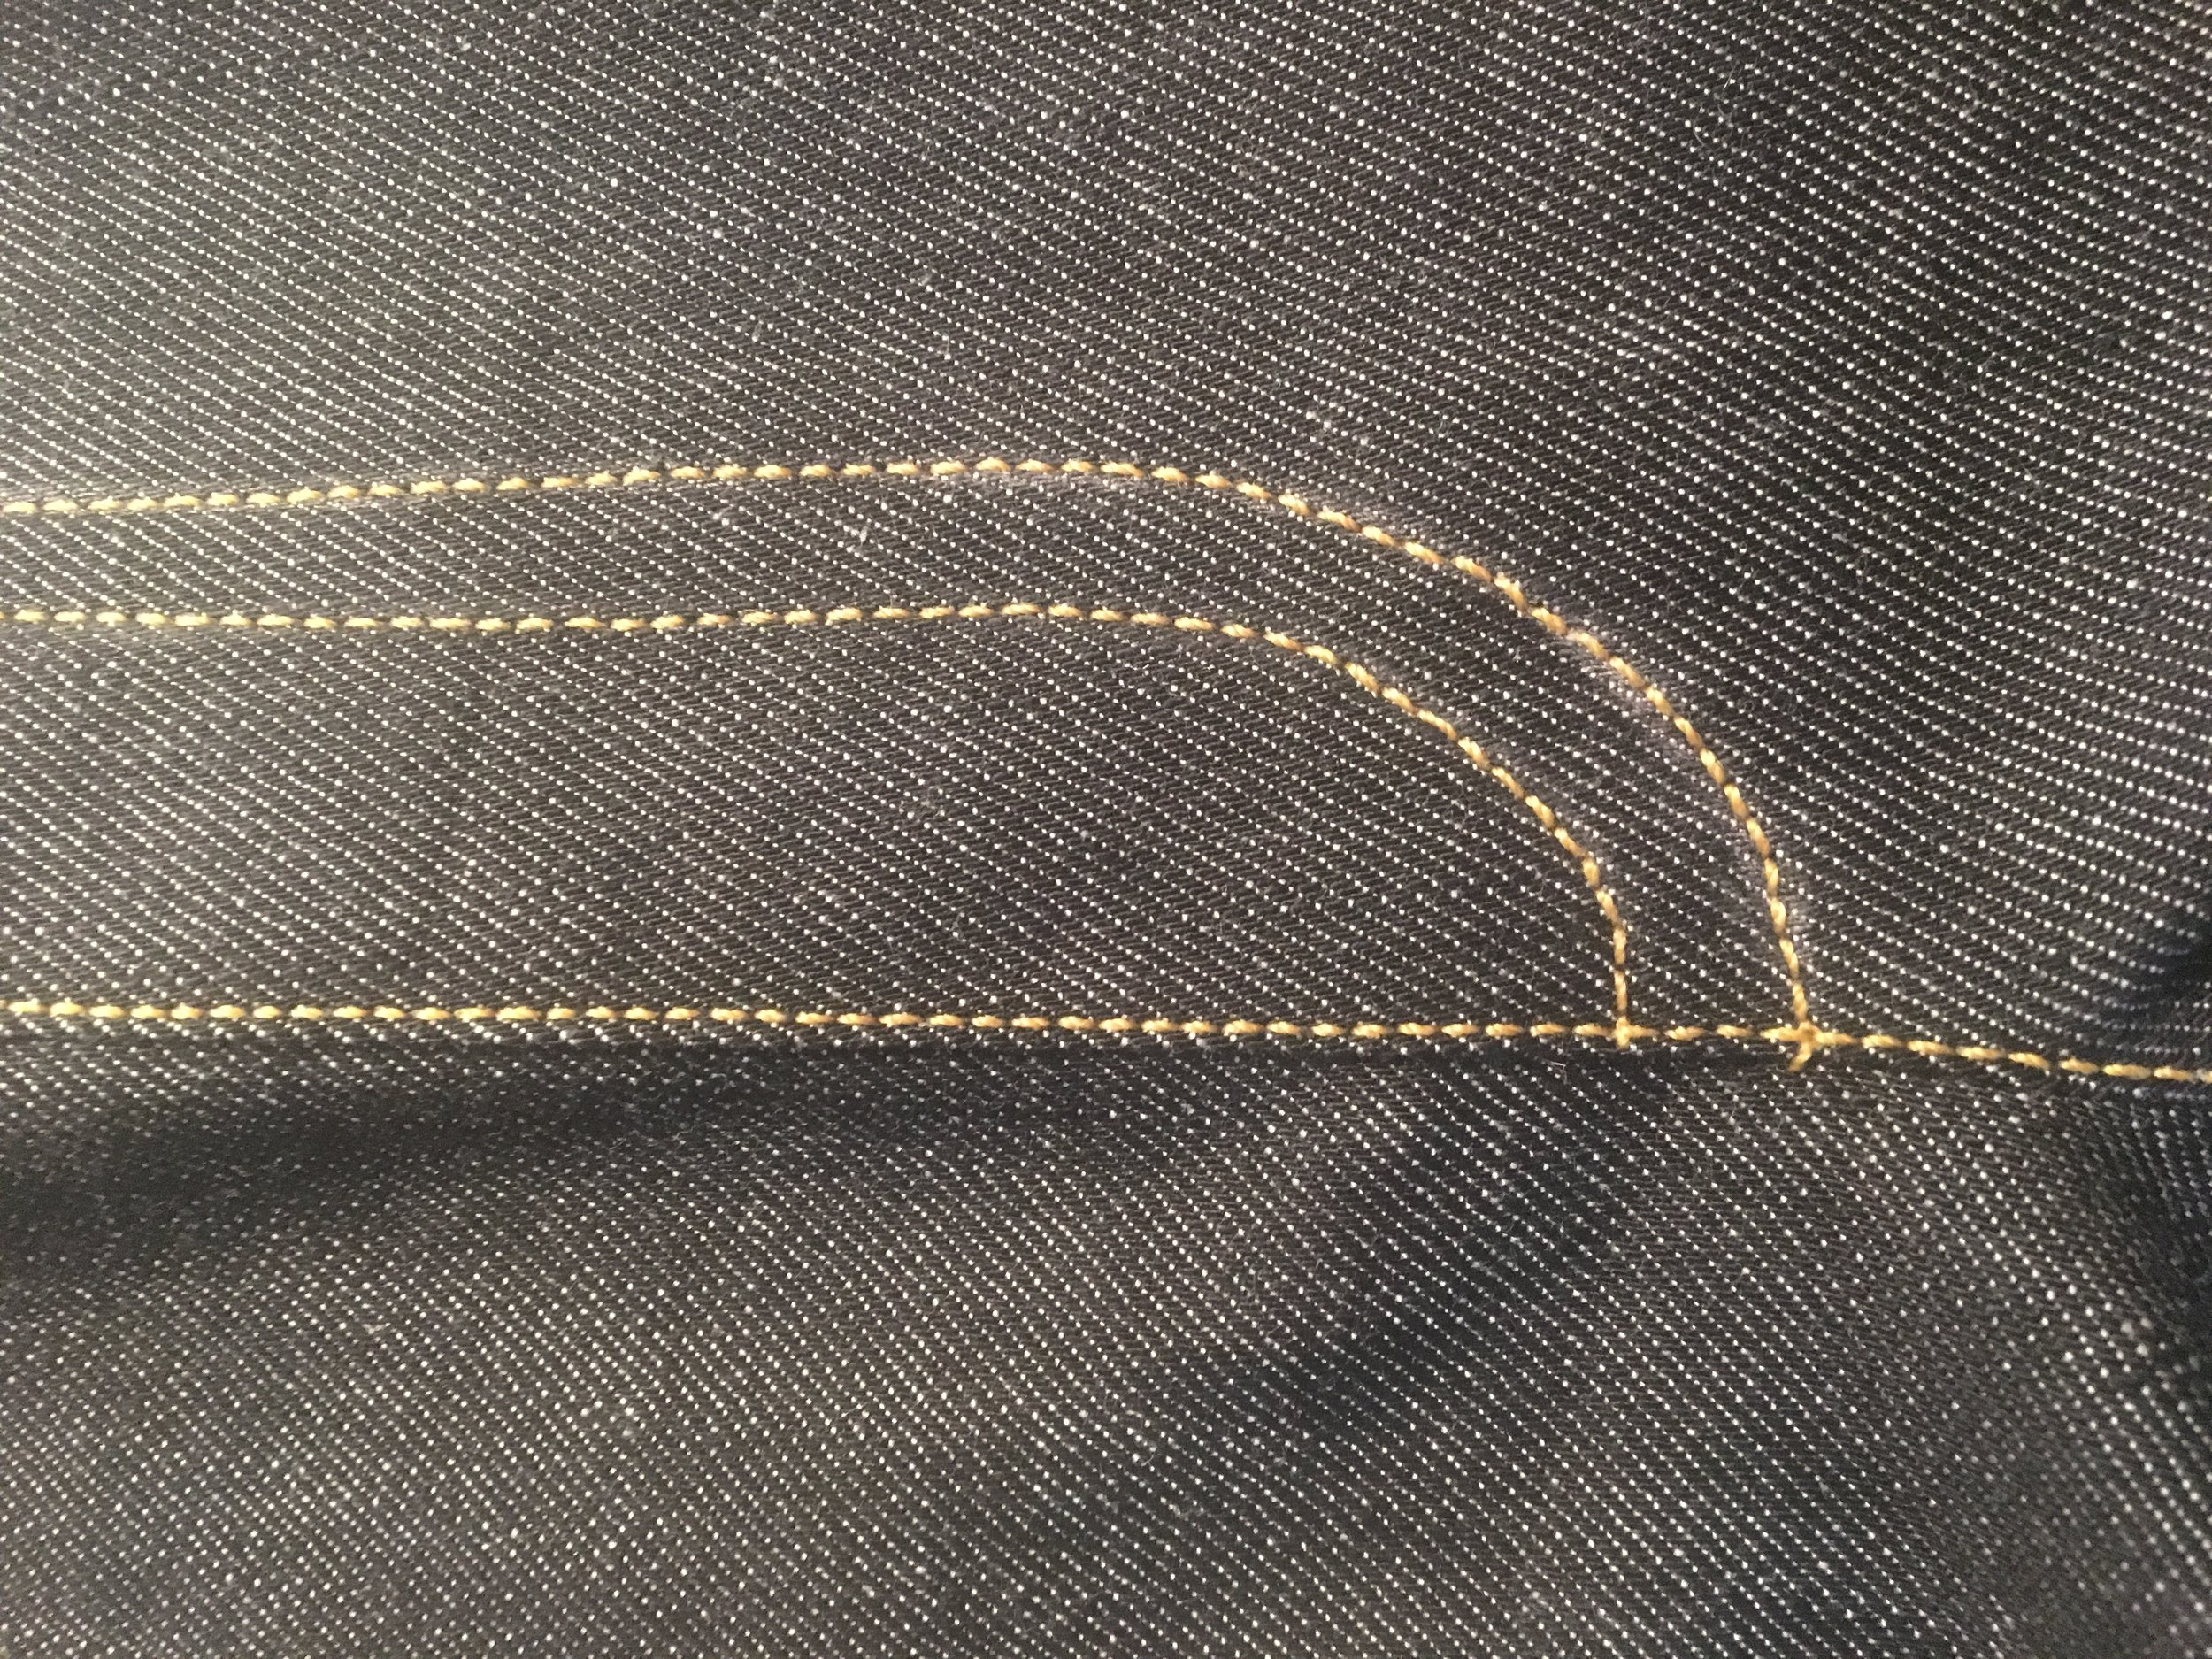 jeans fly topstitching, slightly wobbly